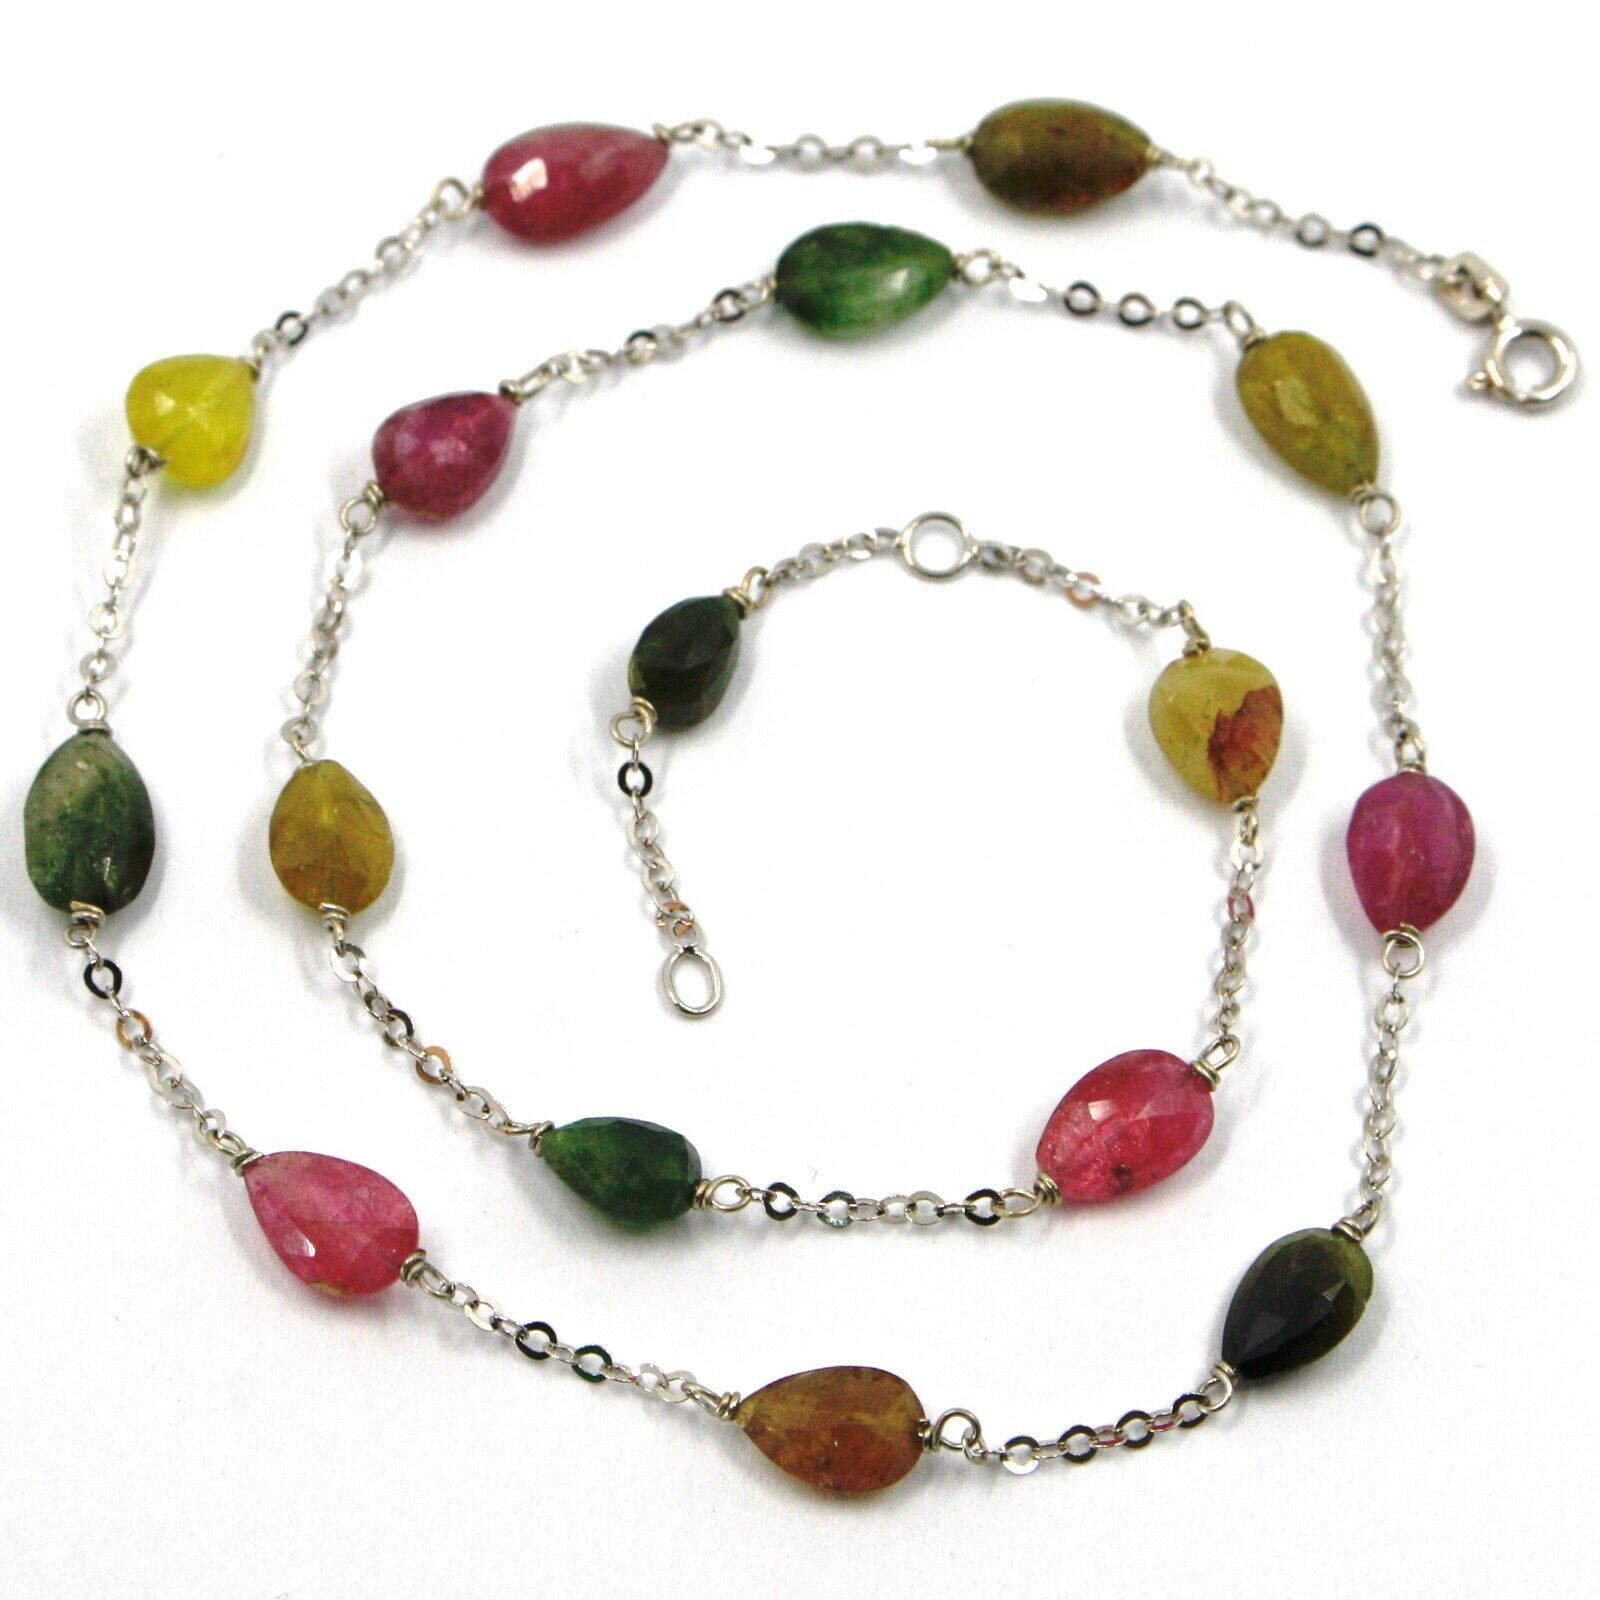 18K WHITE GOLD NECKLACE, PURPLE GREEN YELLOW DROP TOURMALINE, ROLO CHAIN